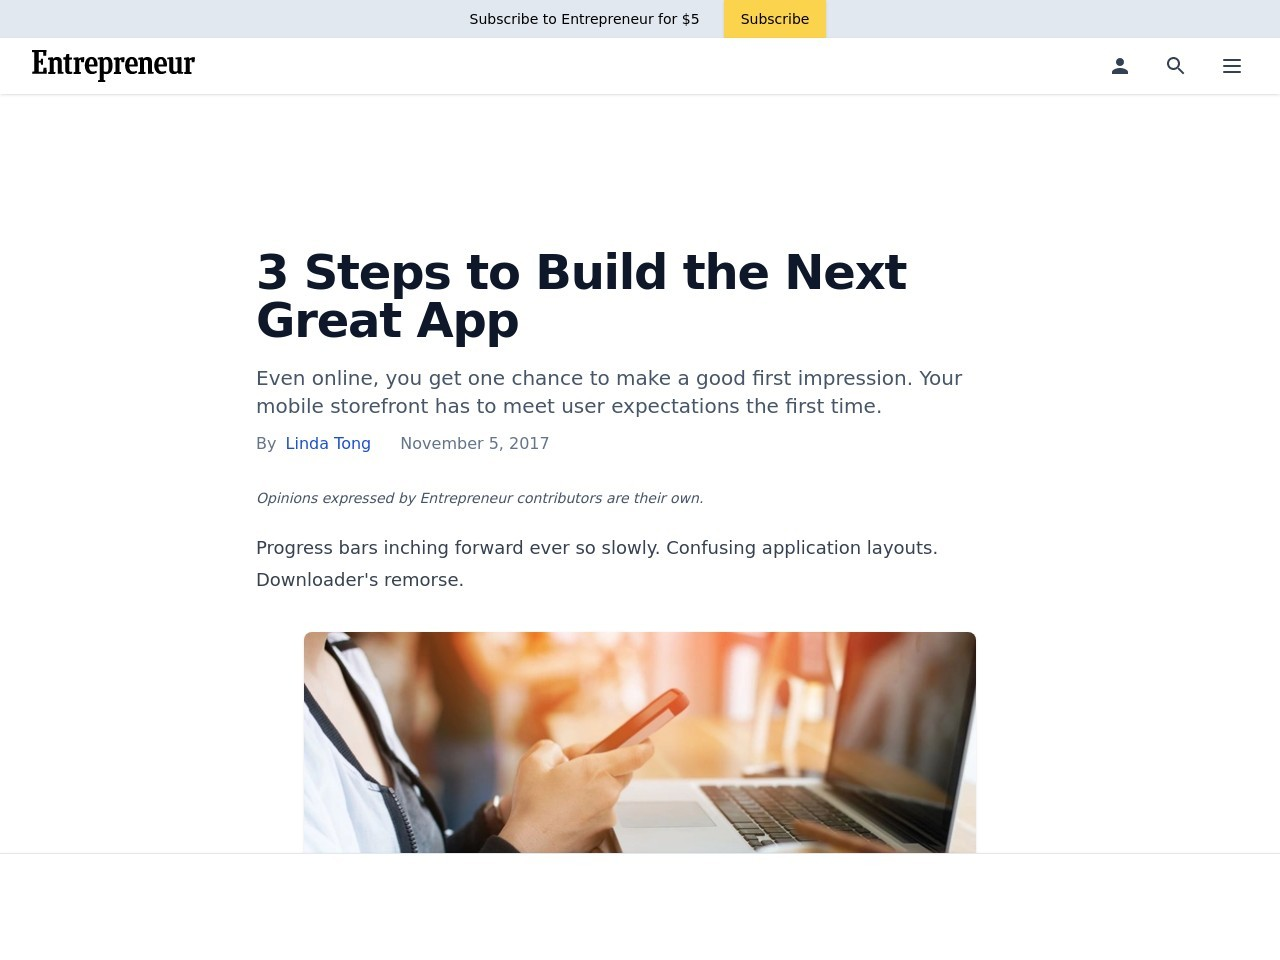 3 Steps to Build the Next Great App